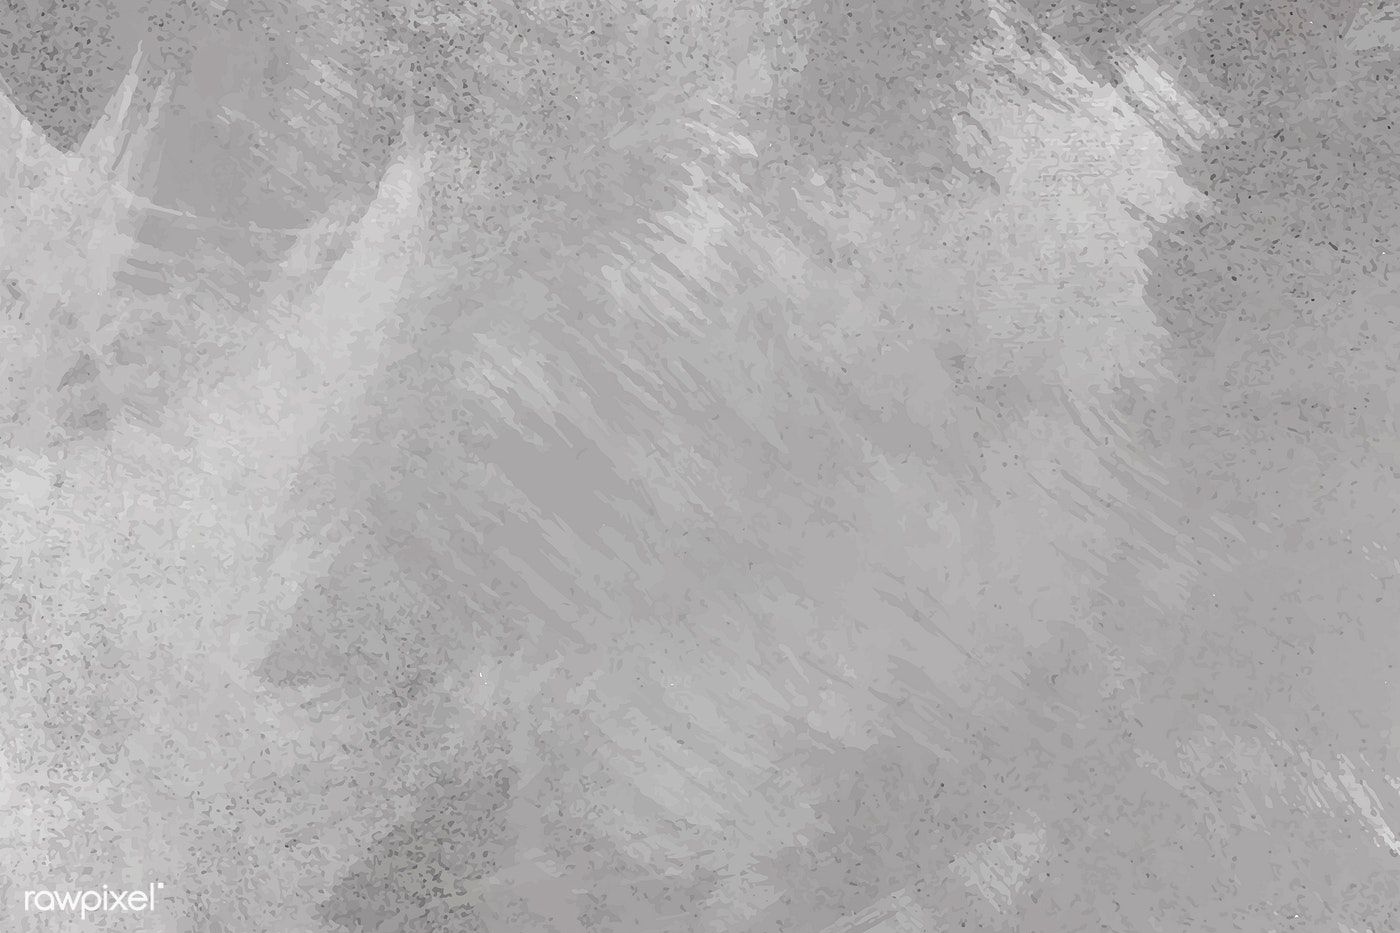 Rustic Gray Cement Textured Wall Vector Free Image By Rawpixel Com Niwat Cement Texture Landscape Architecture Graphics Rustic Background